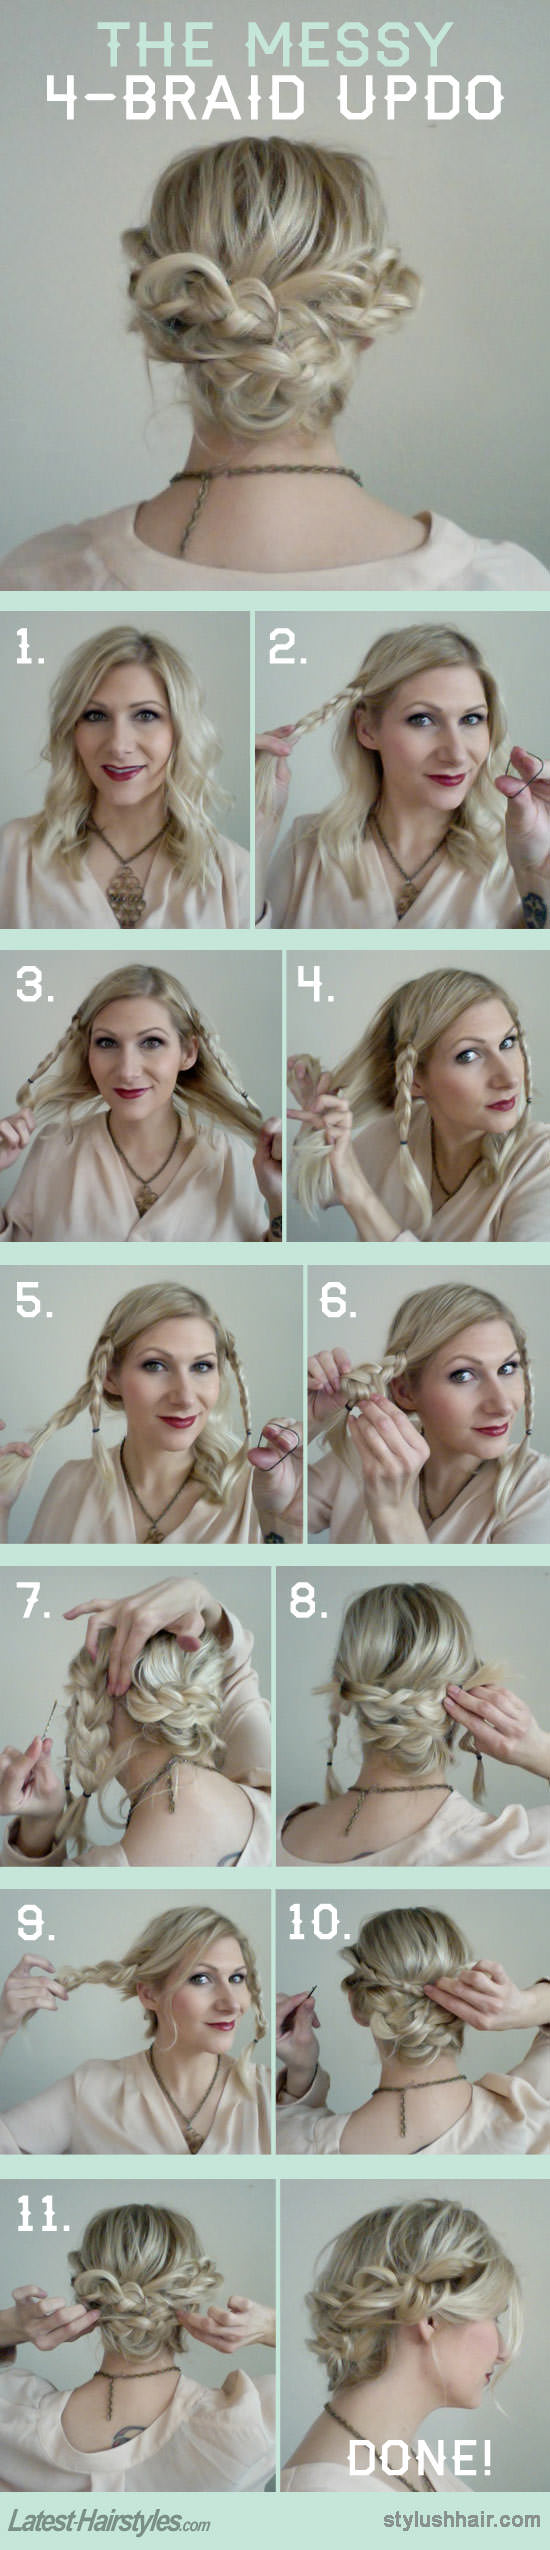 4 braid updo